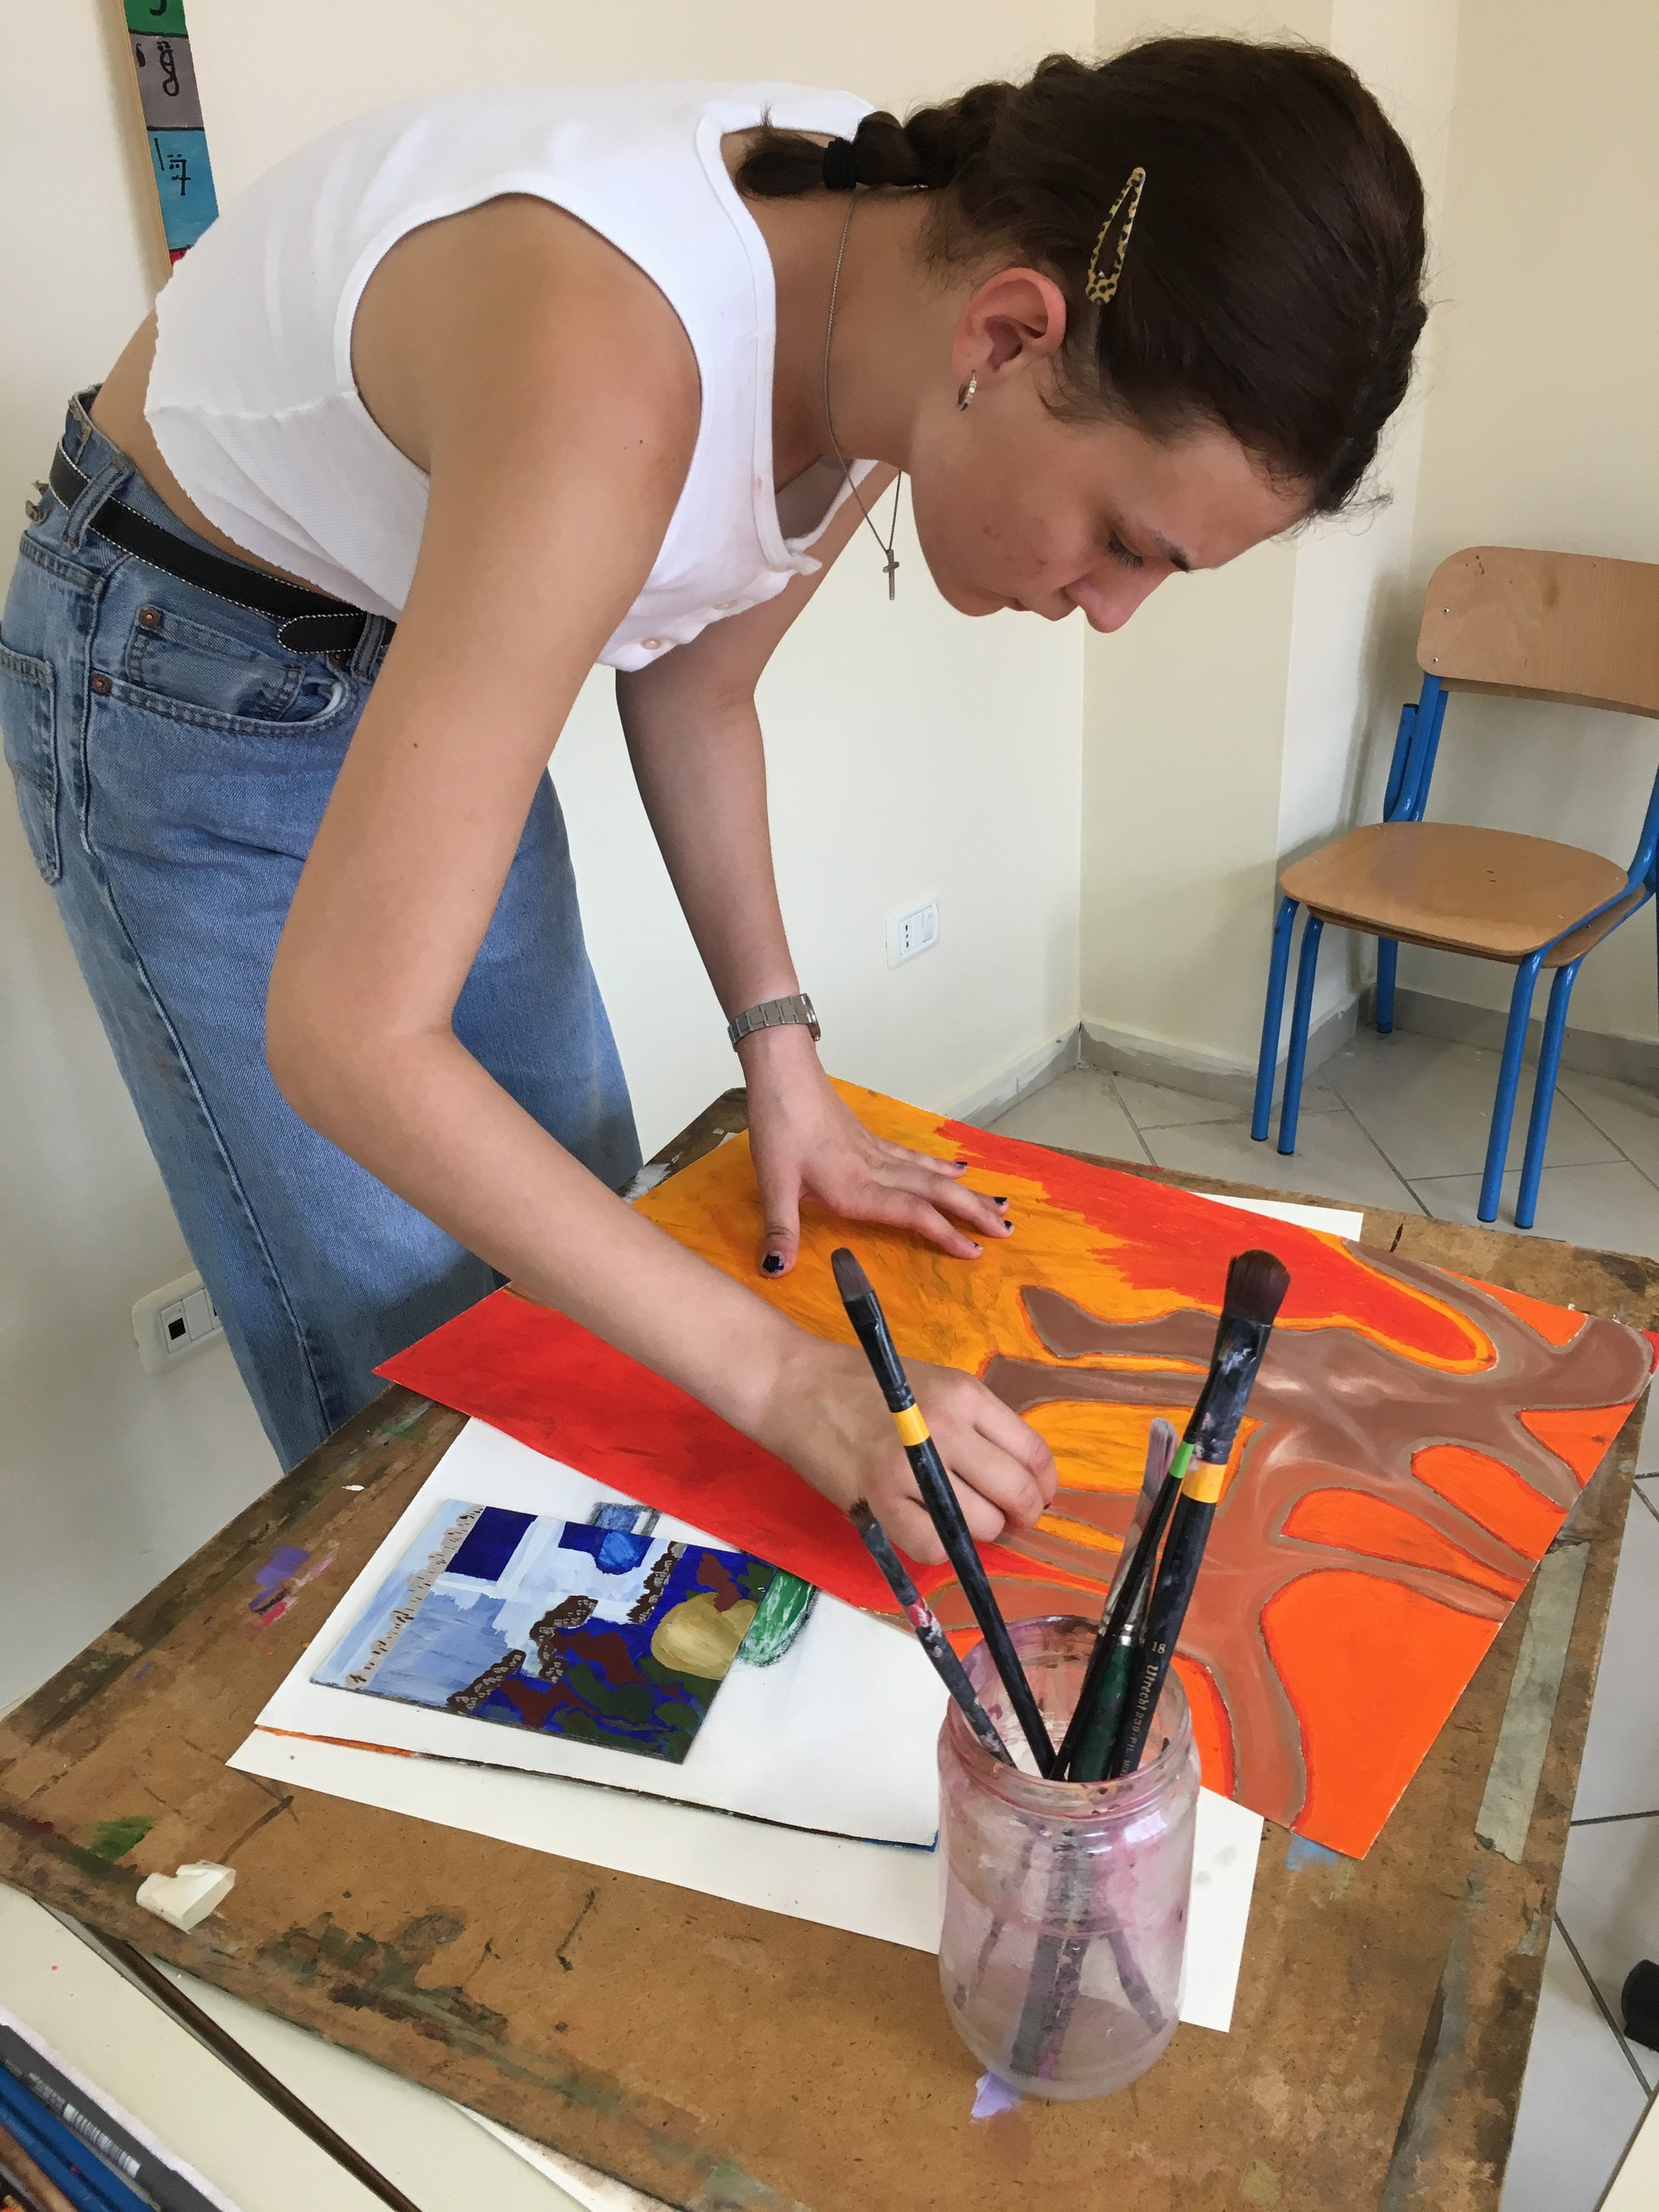 Elinka with her small egg tempera painting + starting a new idea working with oil bars